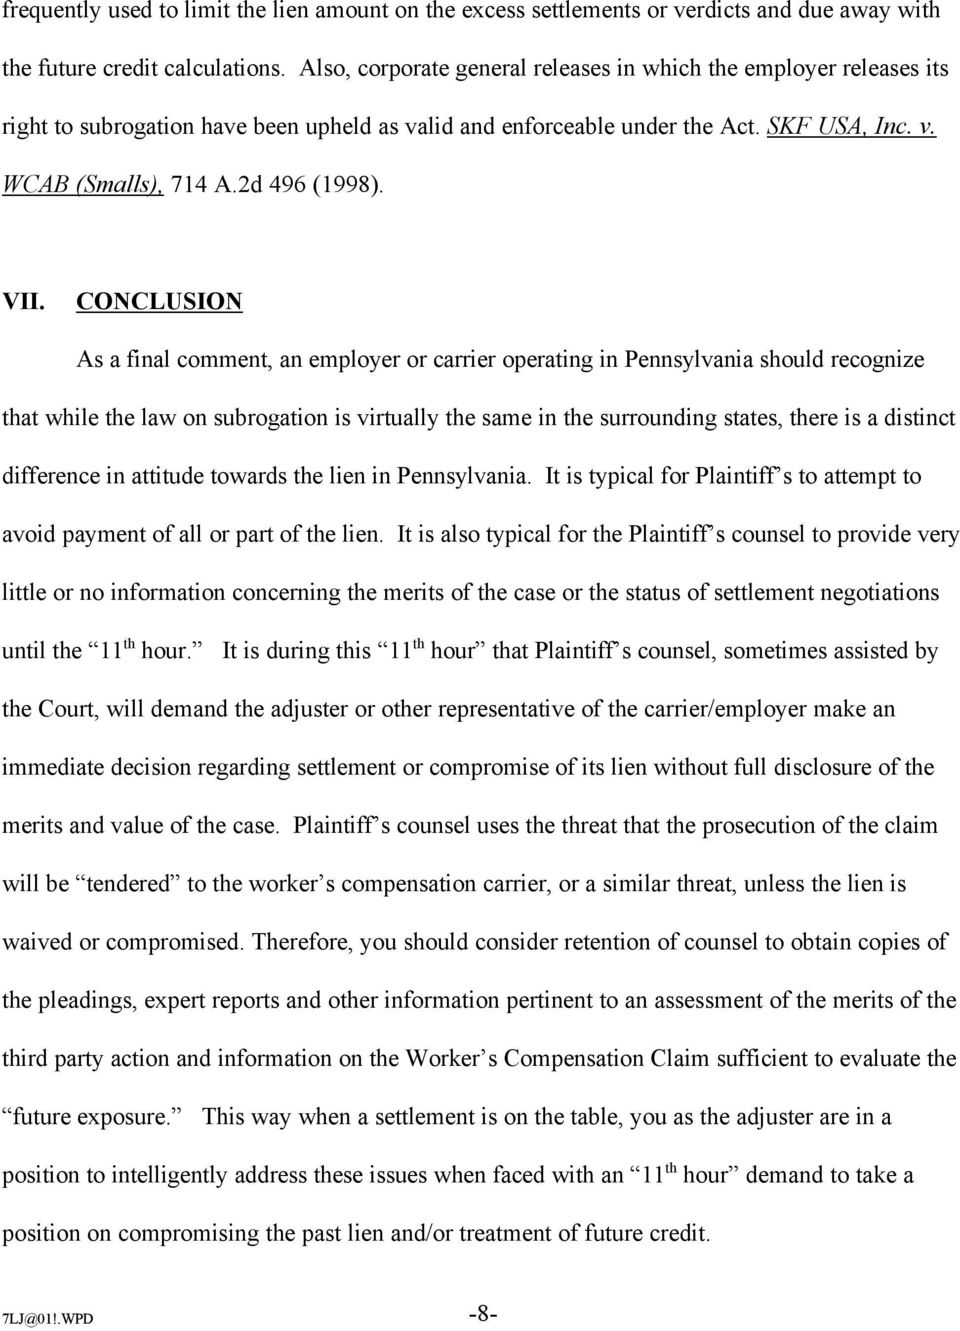 VII. CONCLUSION As a final comment, an employer or carrier operating in Pennsylvania should recognize that while the law on subrogation is virtually the same in the surrounding states, there is a